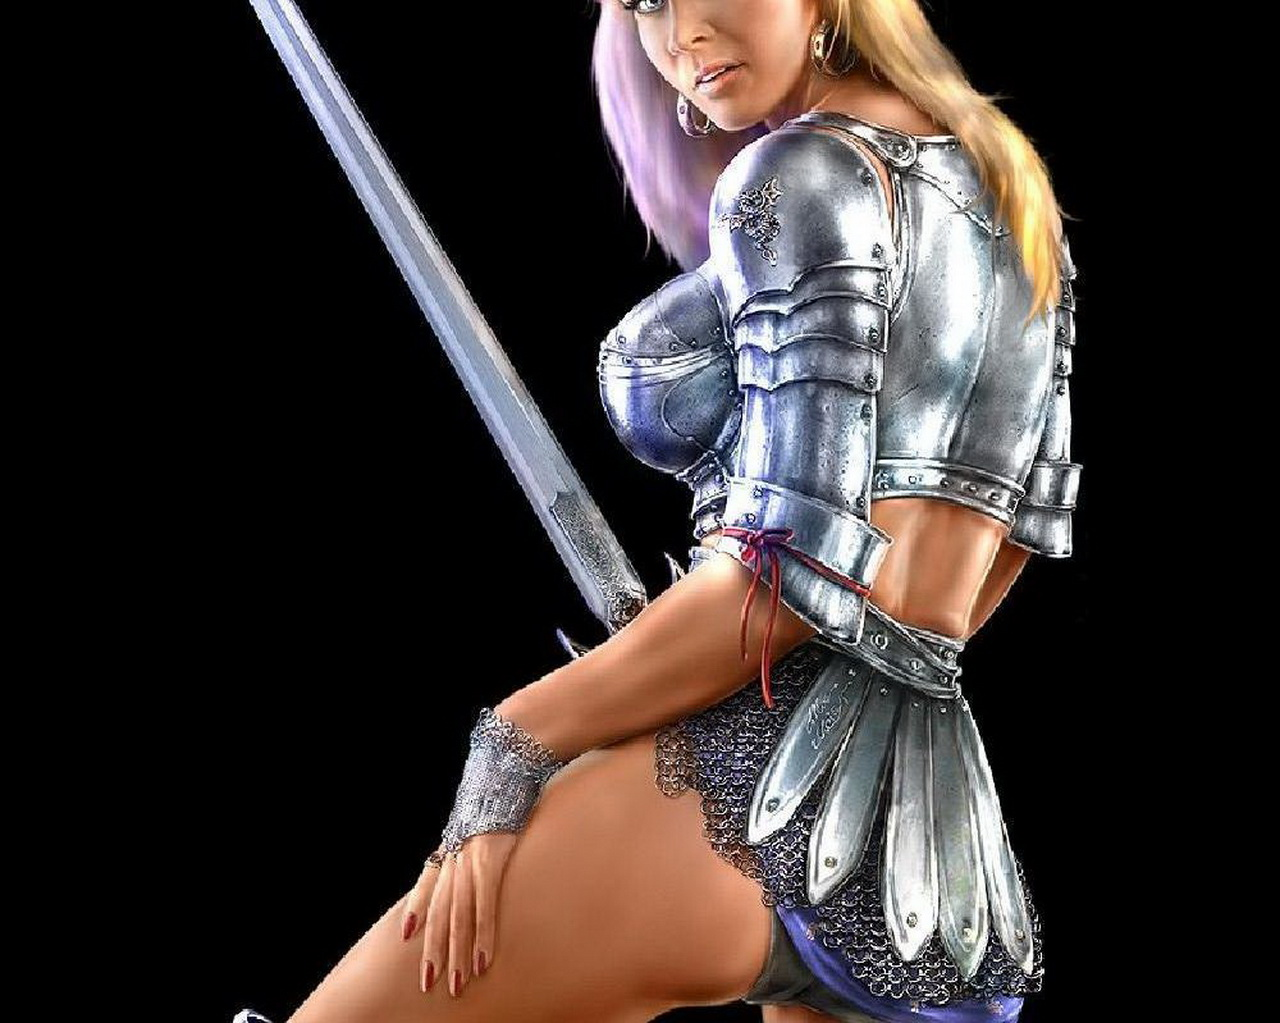 Hd fantasy warrior sexy girl images sexual videos